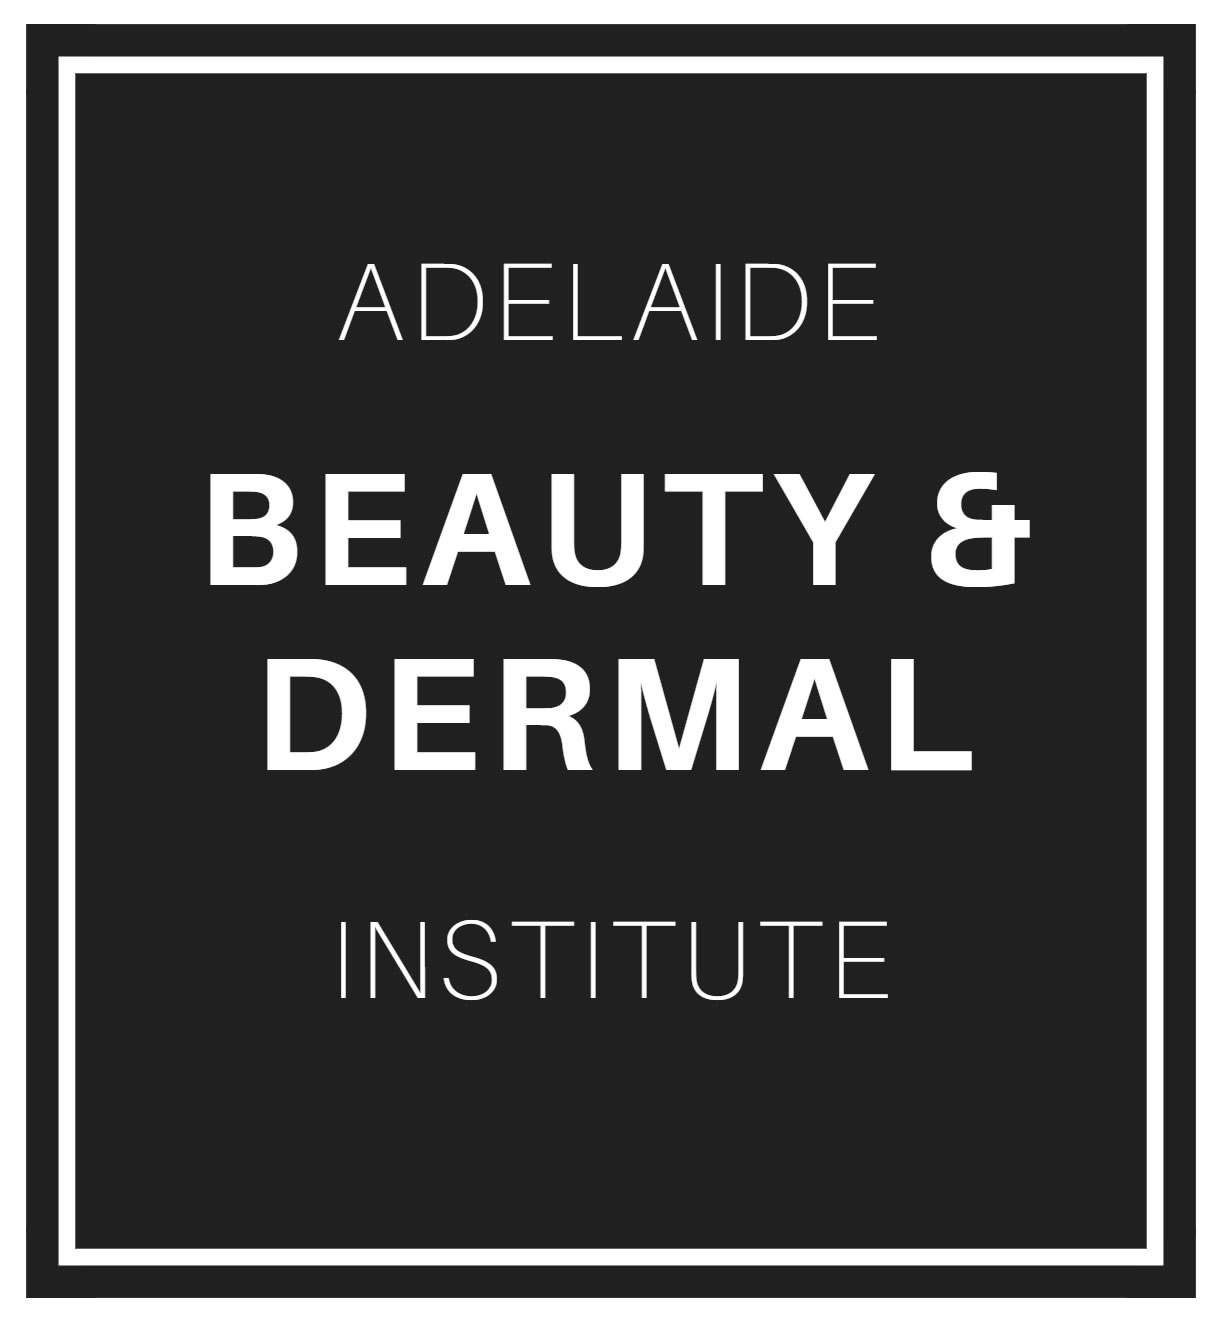 Adelaide Beauty and Dermal Institute